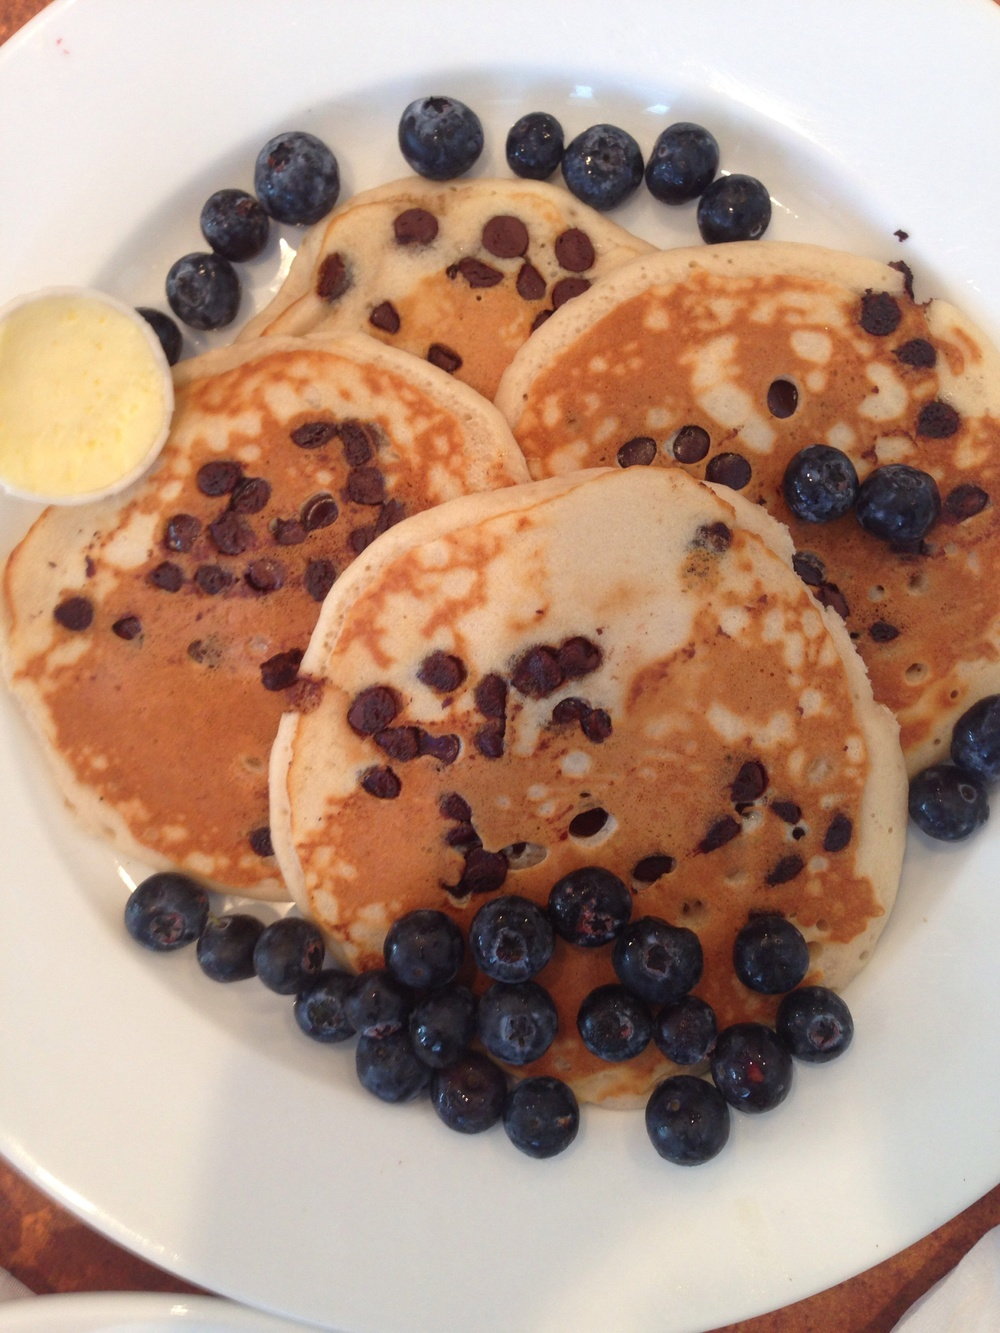 Vegan chocolate chip pancakes with fresh blueberries